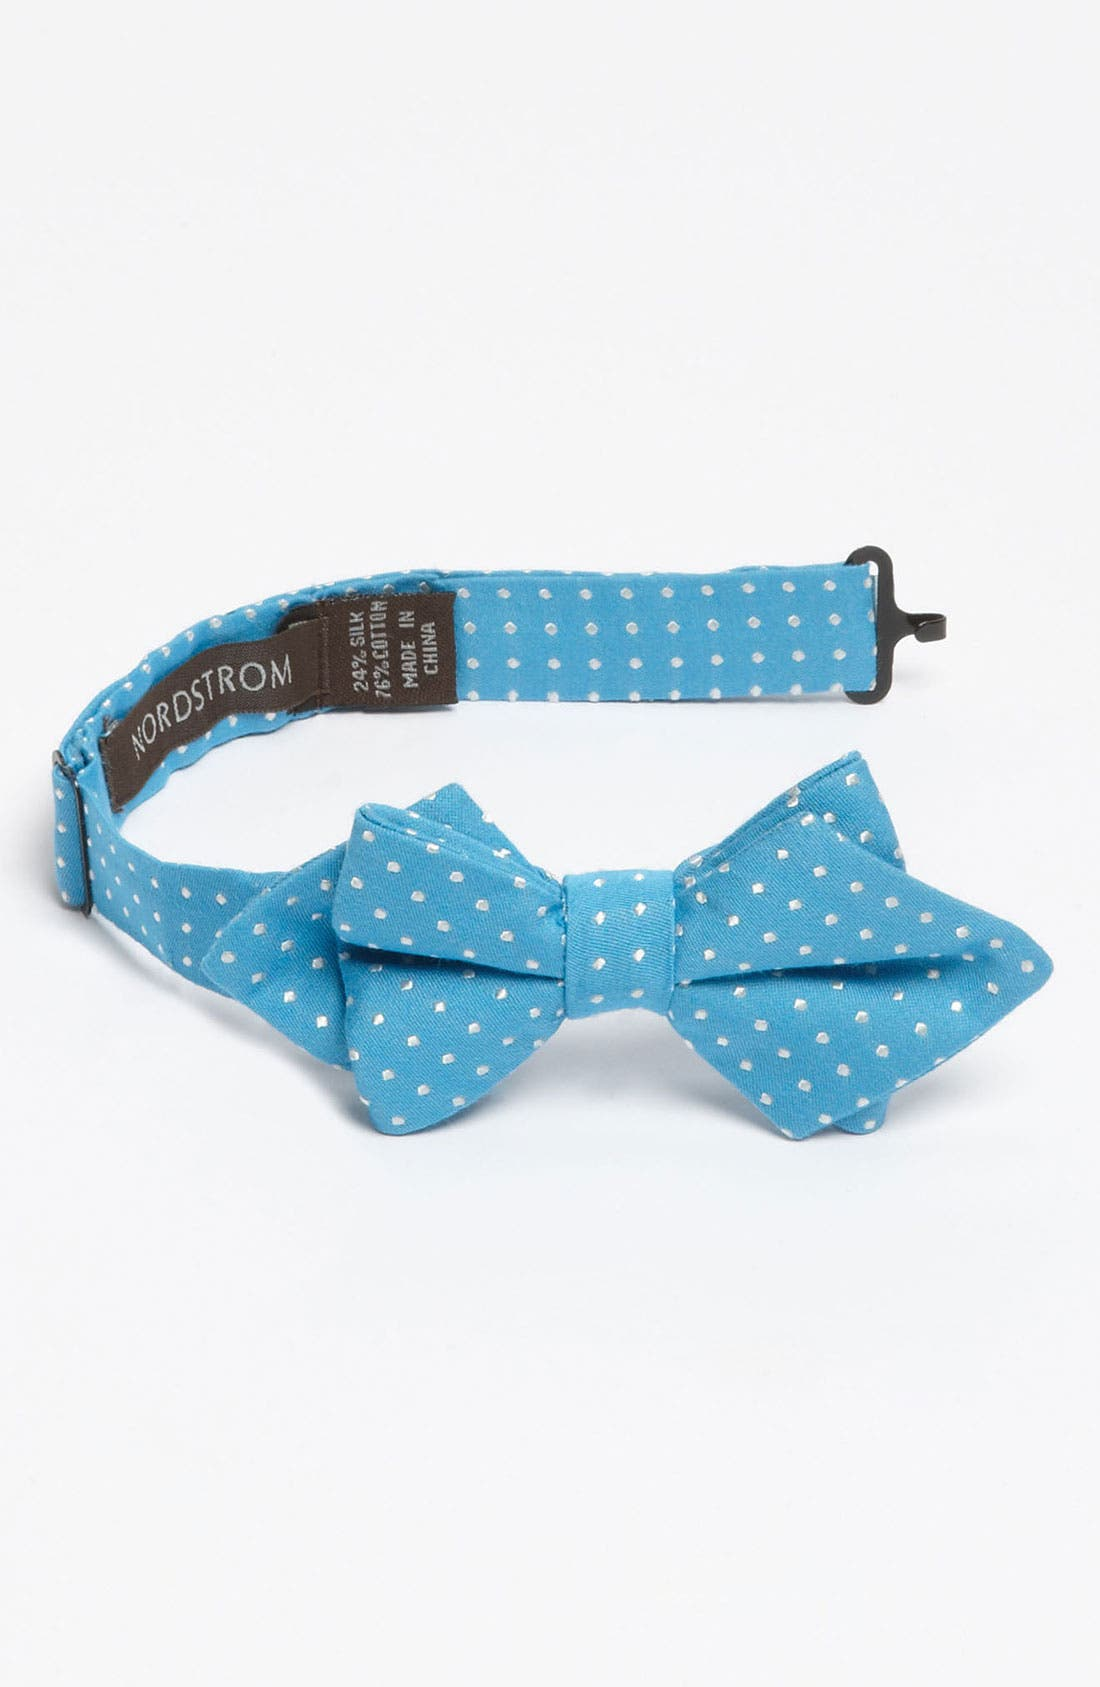 Alternate Image 1 Selected - Nordstrom Cotton Blend Bow Tie (Little Boys)